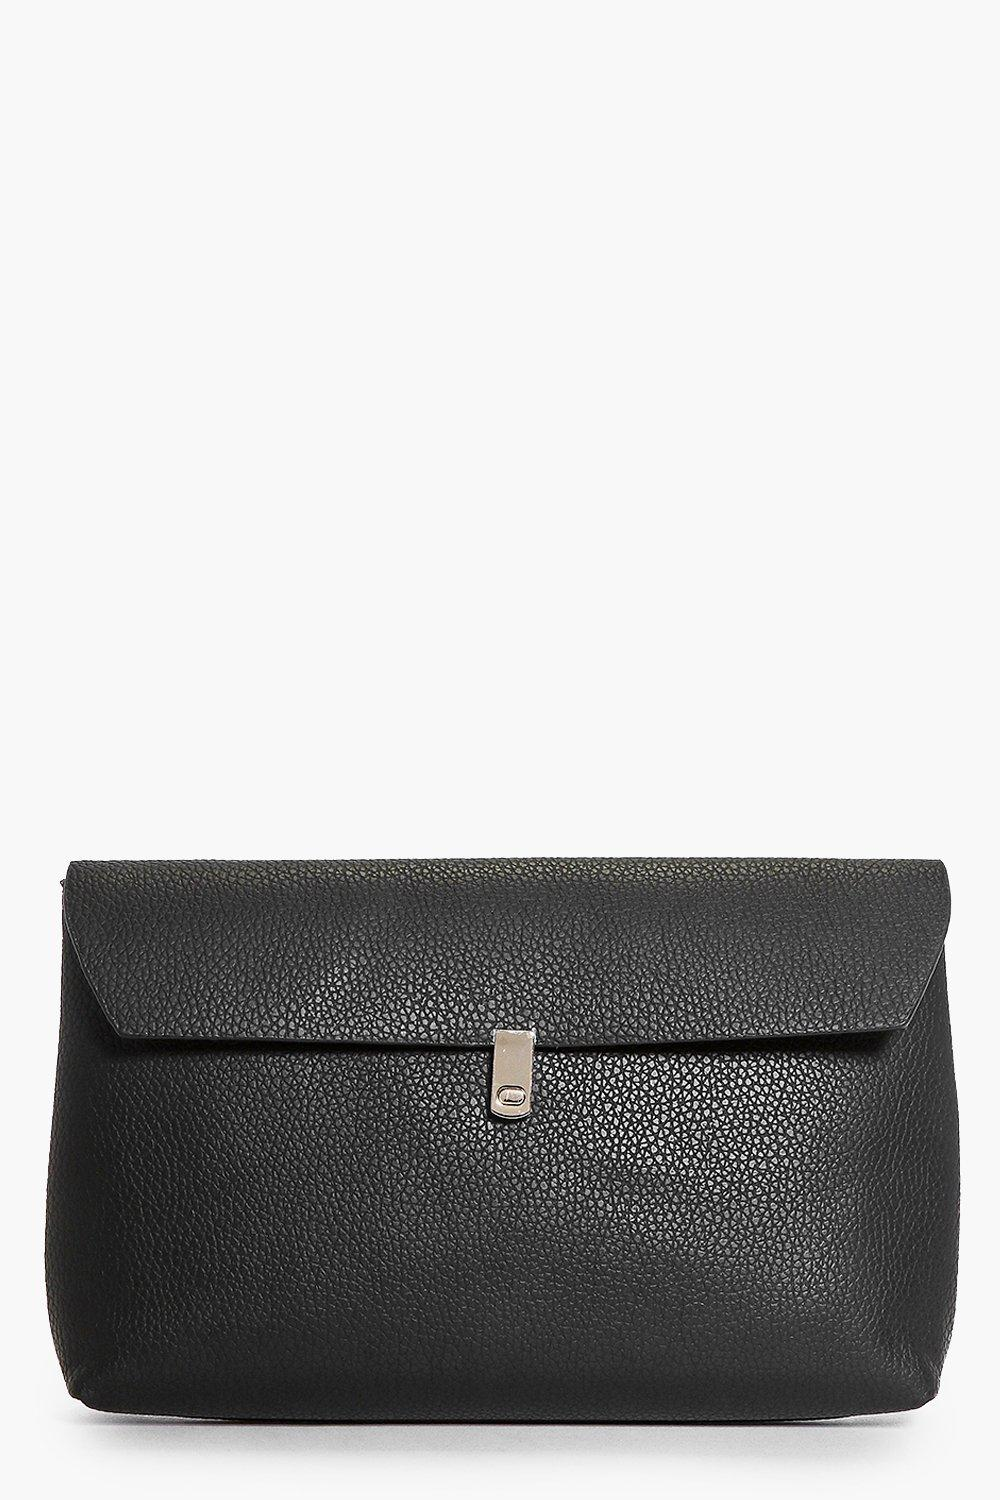 Simple Fold Over Clasp Detail Clutch Bag black